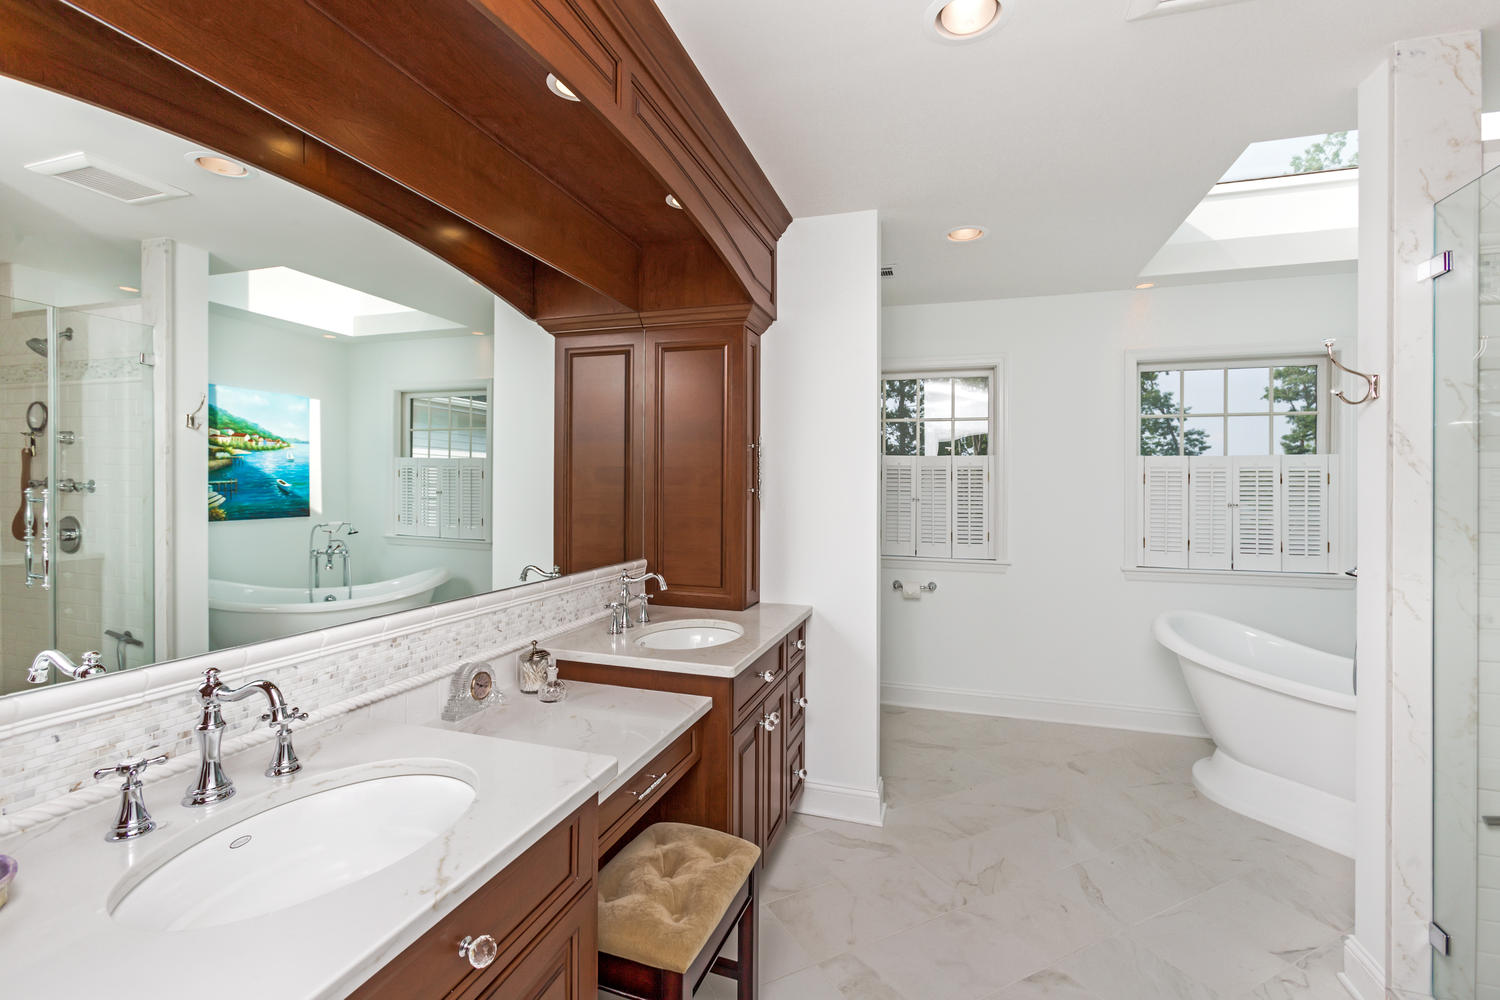 Custom Vanity / Bathroom Cabinetry | Design Line Kitchens in Sea ...